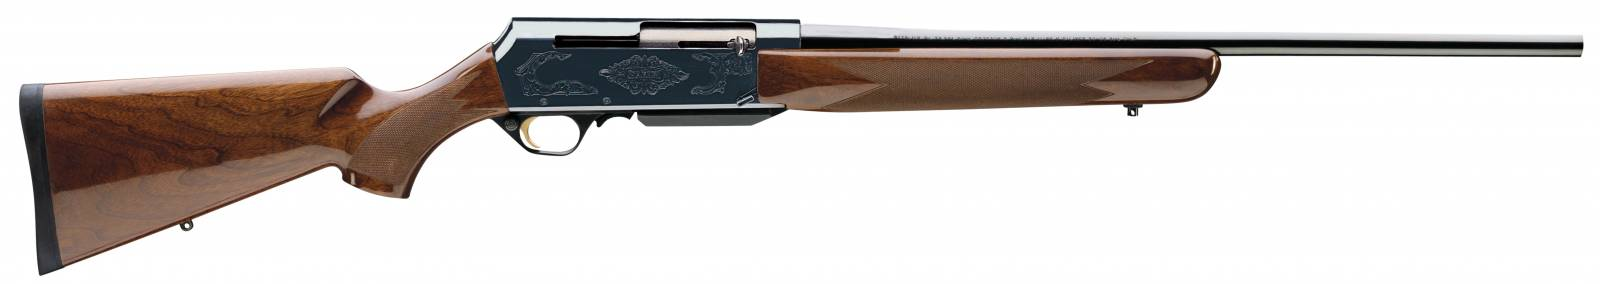 Browning 031001223 BAR Safari Semi-Automatic 25-06 Remington 24